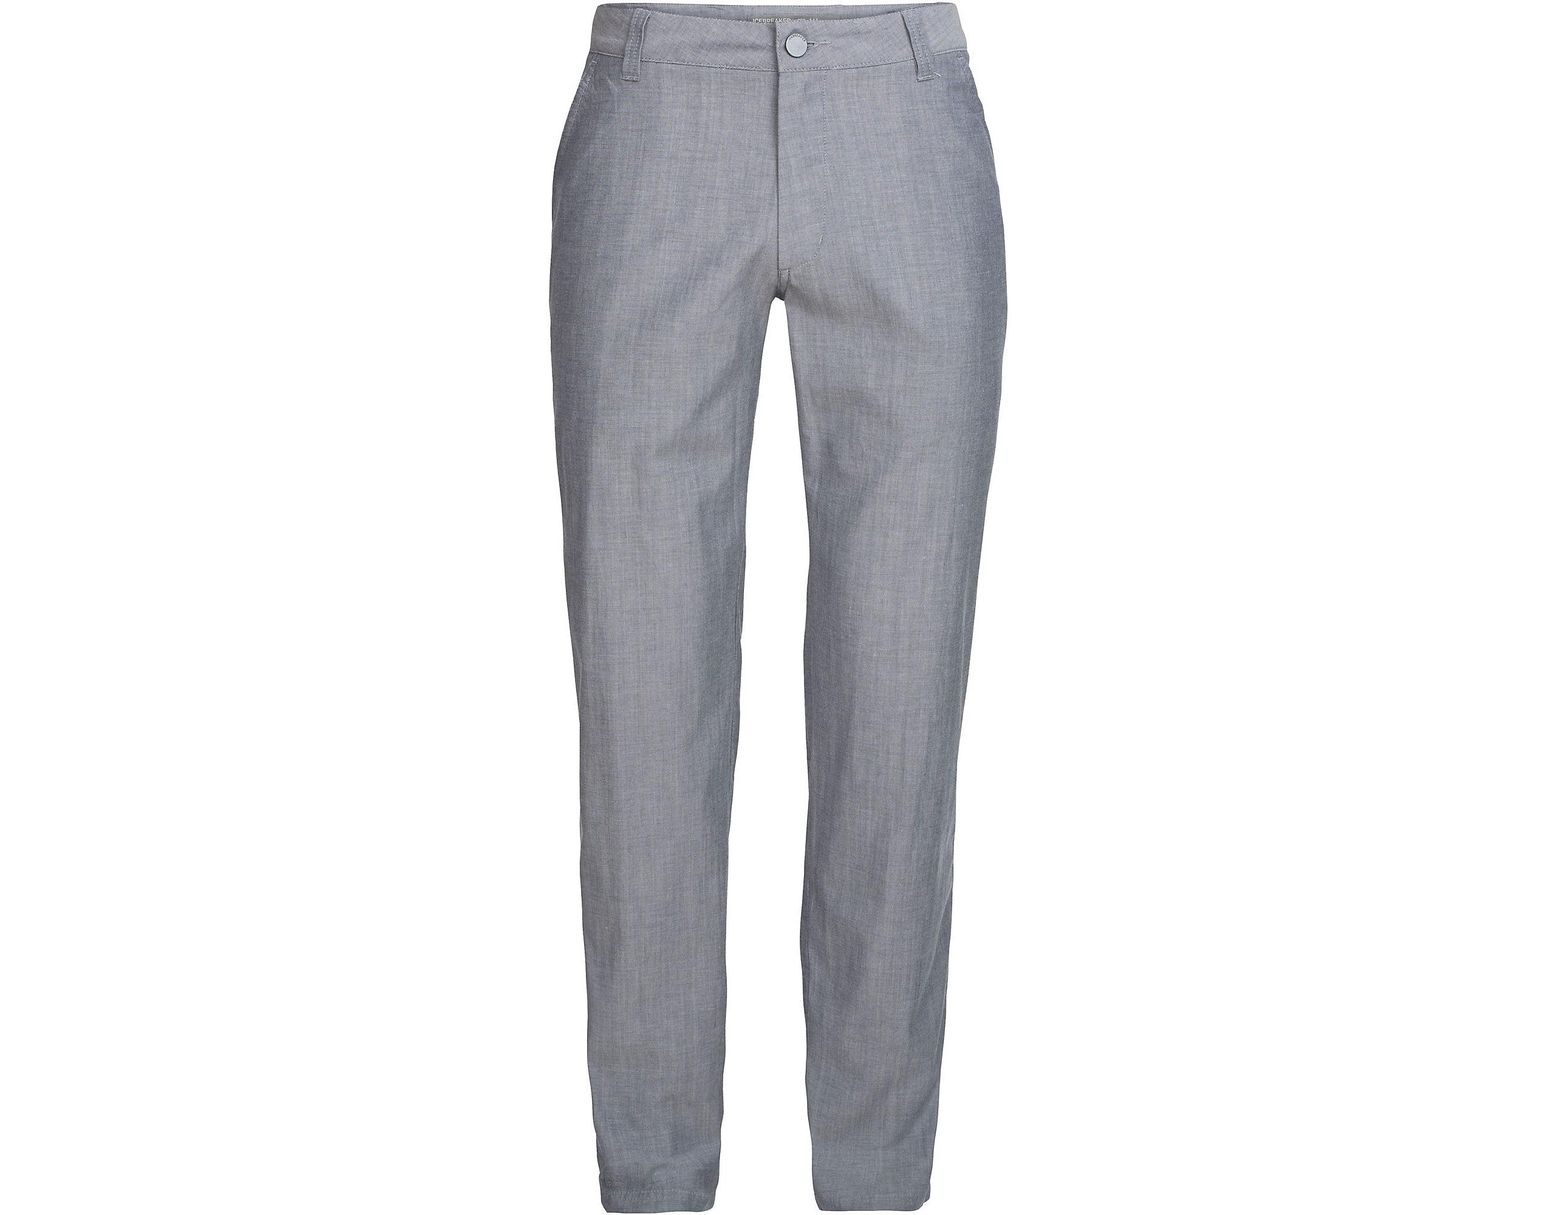 9982a0237a2 Icebreaker Perpetual Pant in Gray for Men - Save 25% - Lyst